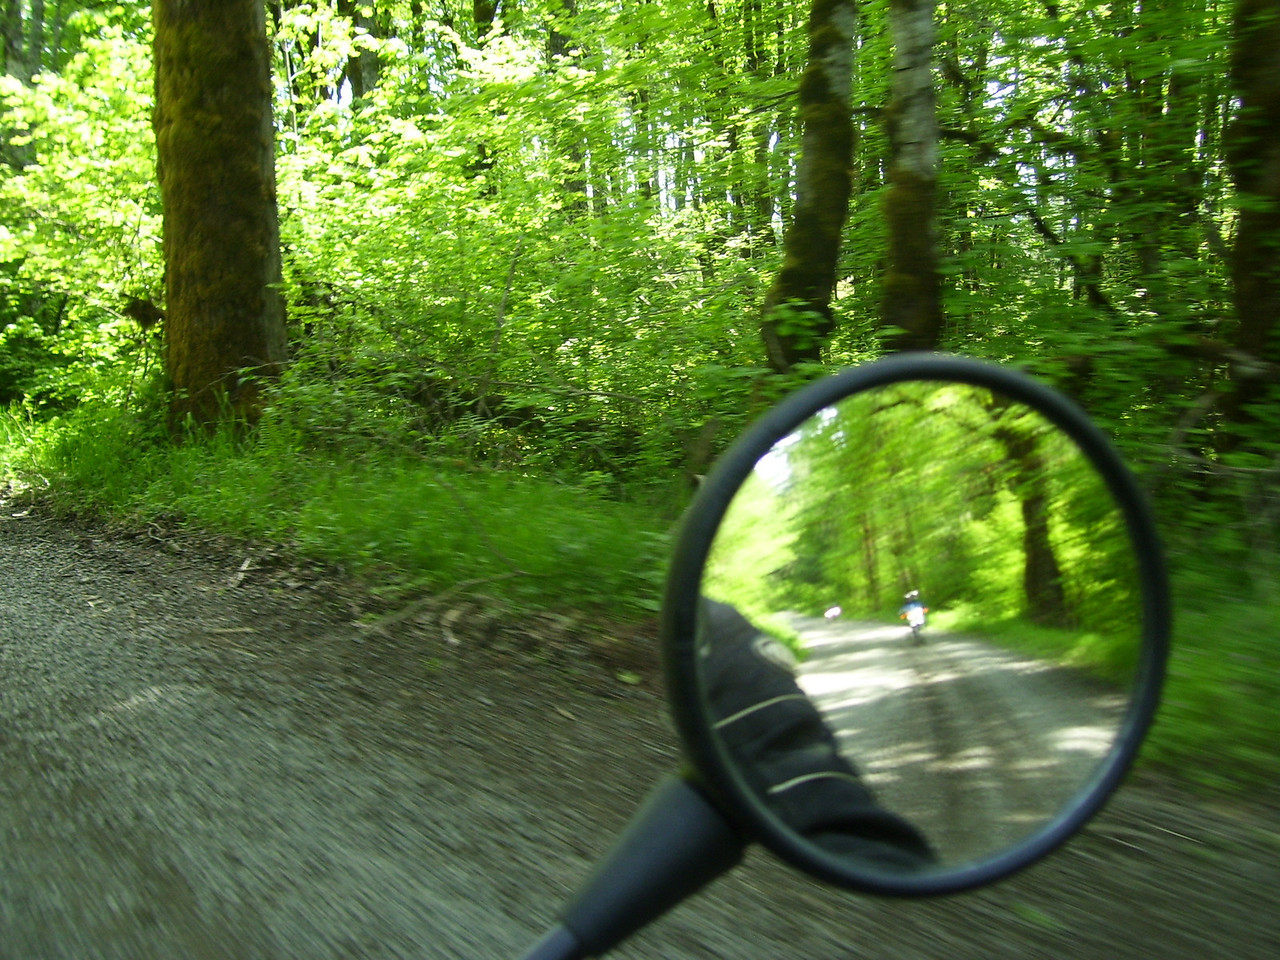 On the 24 road with Sylvia & Pauleen in the mirror.